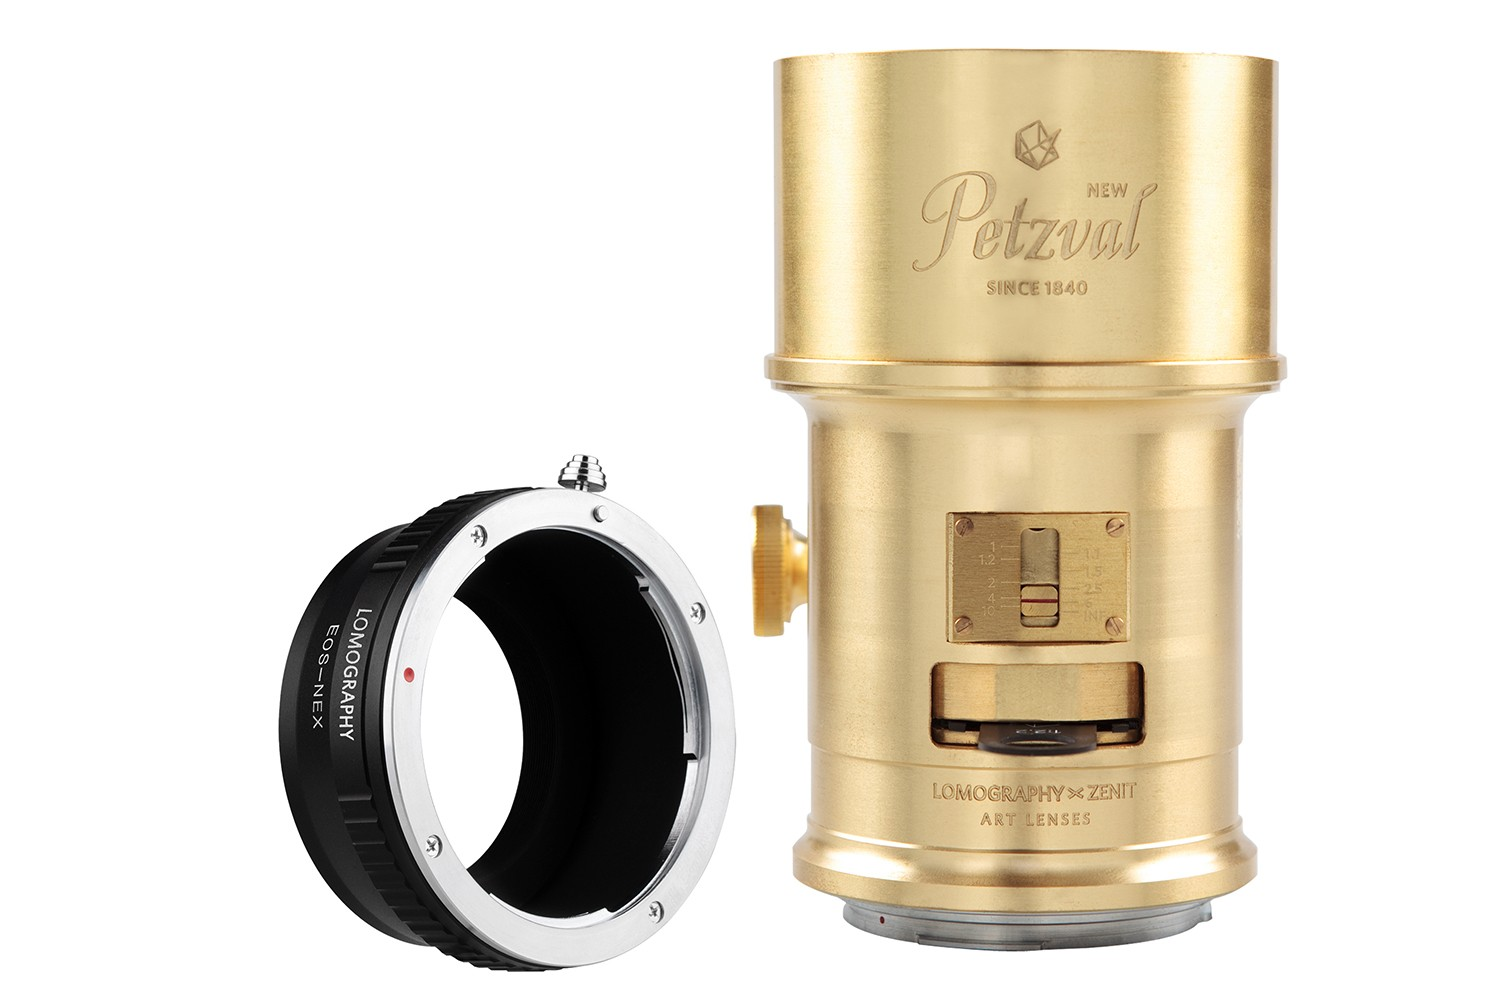 New Petzval 85 Art Lens Brass - Canon EF Mount with NEX Adapter